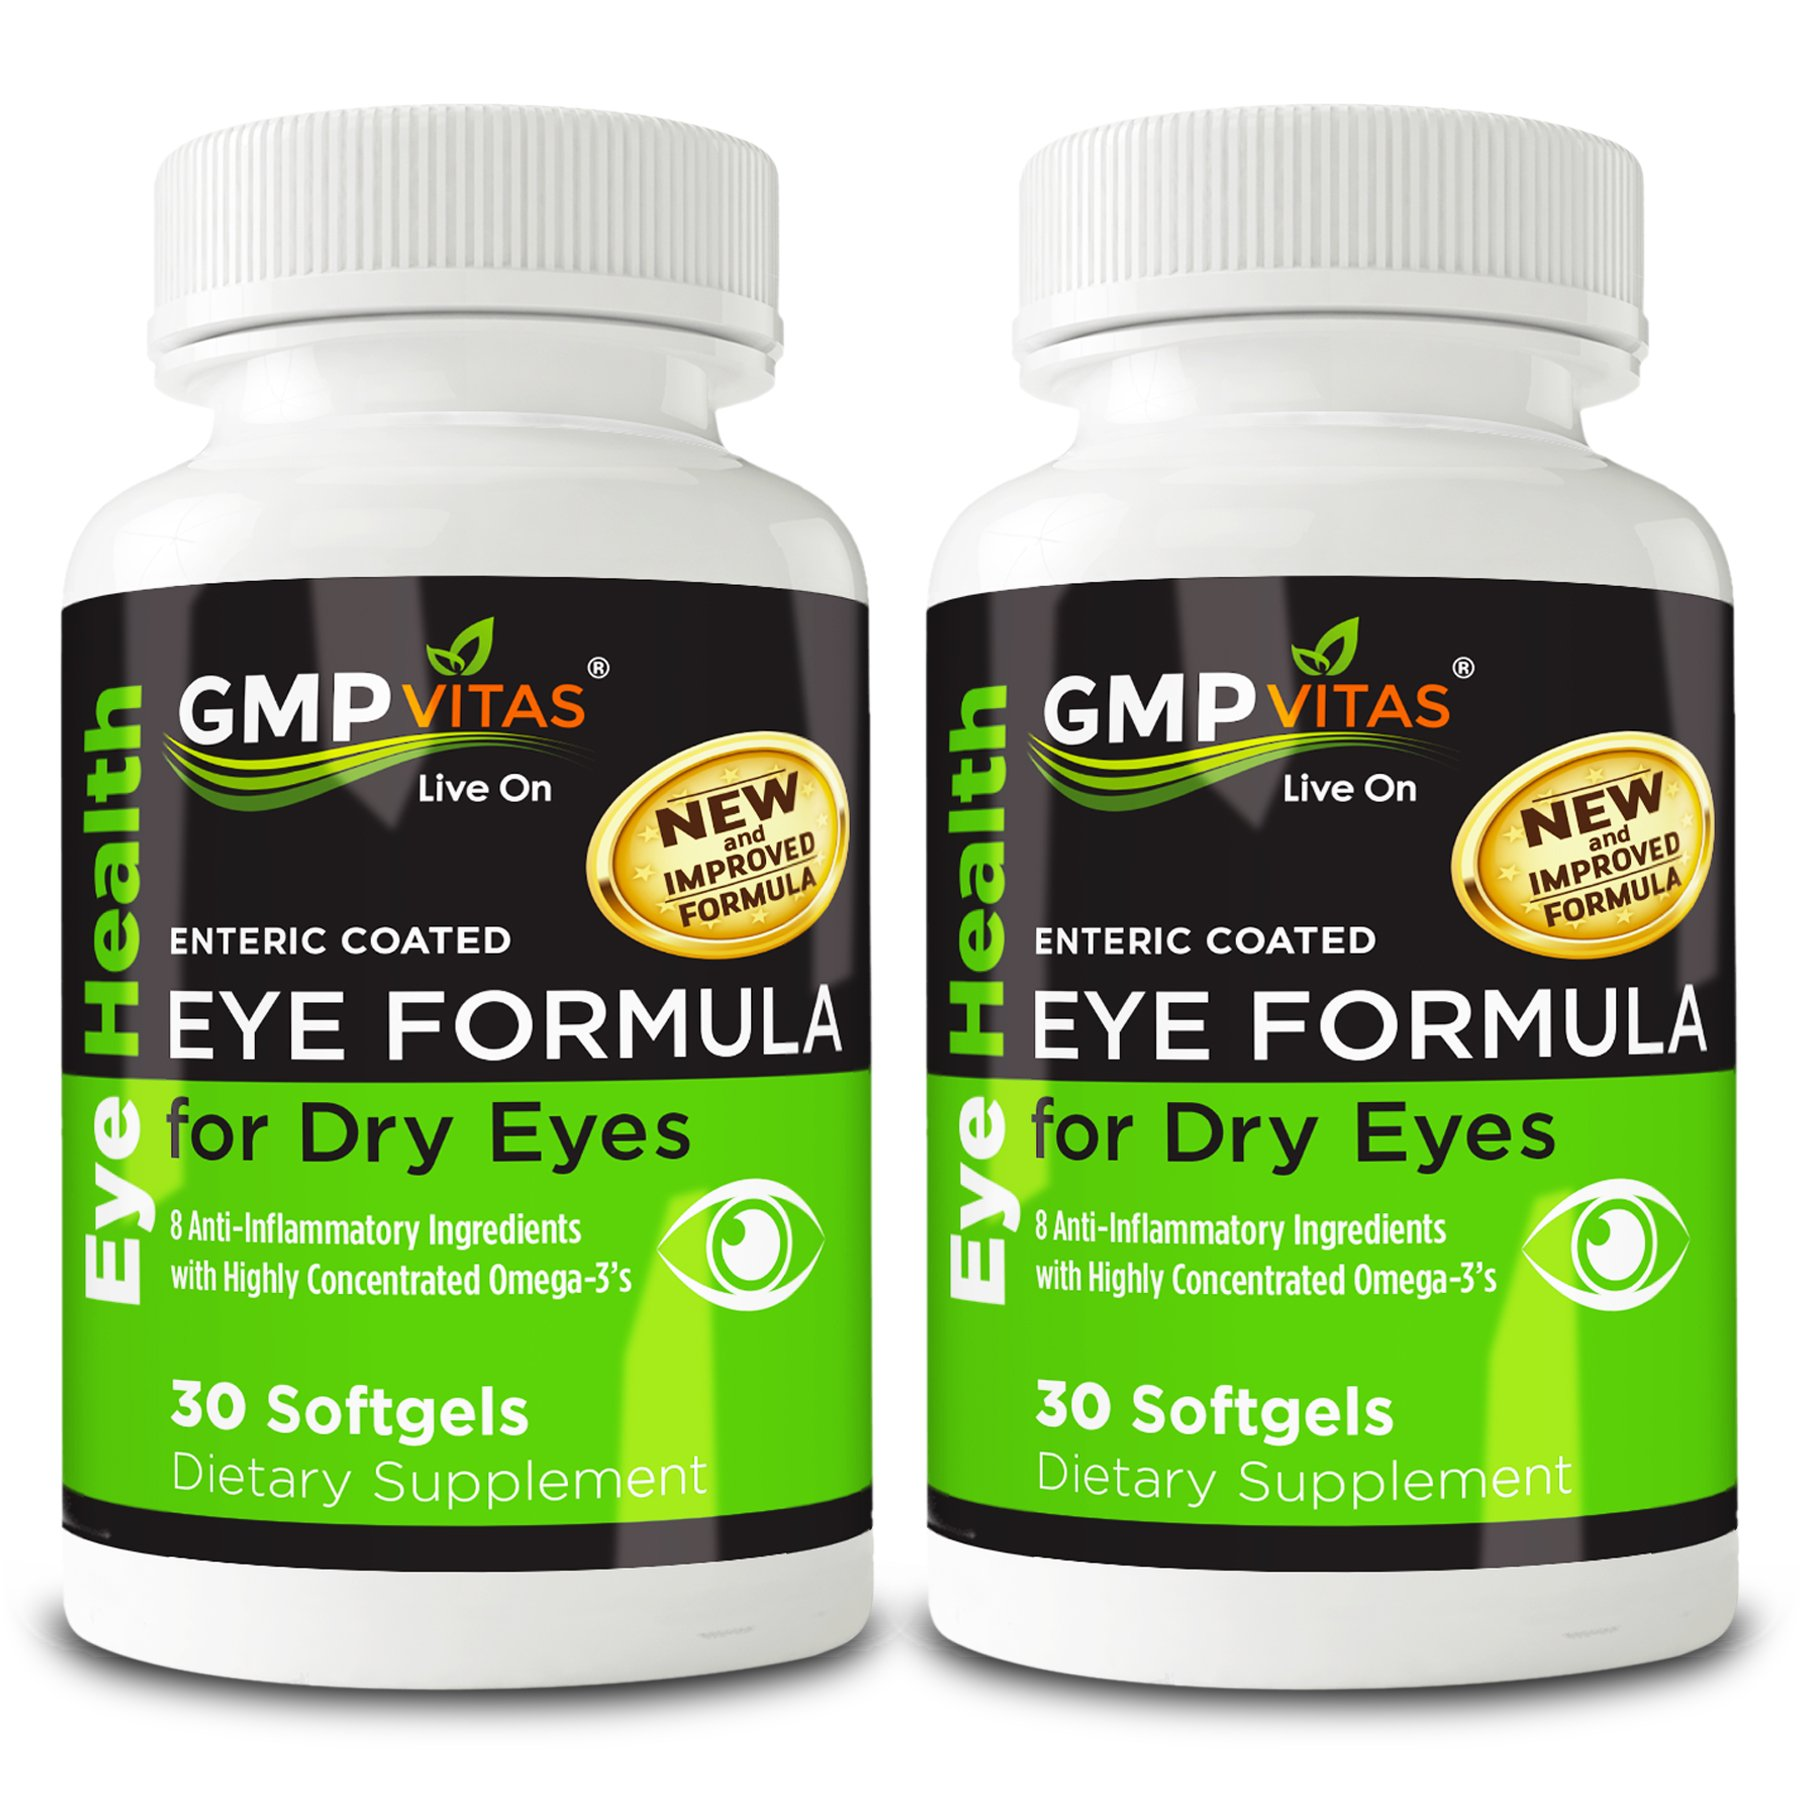 GMPVitas Enteric Coated Eye Formula- High Potency Omega-3 Supplement with Lutein, Astaxanthin Hyaluronic Acid, Vitamin C and E (2)